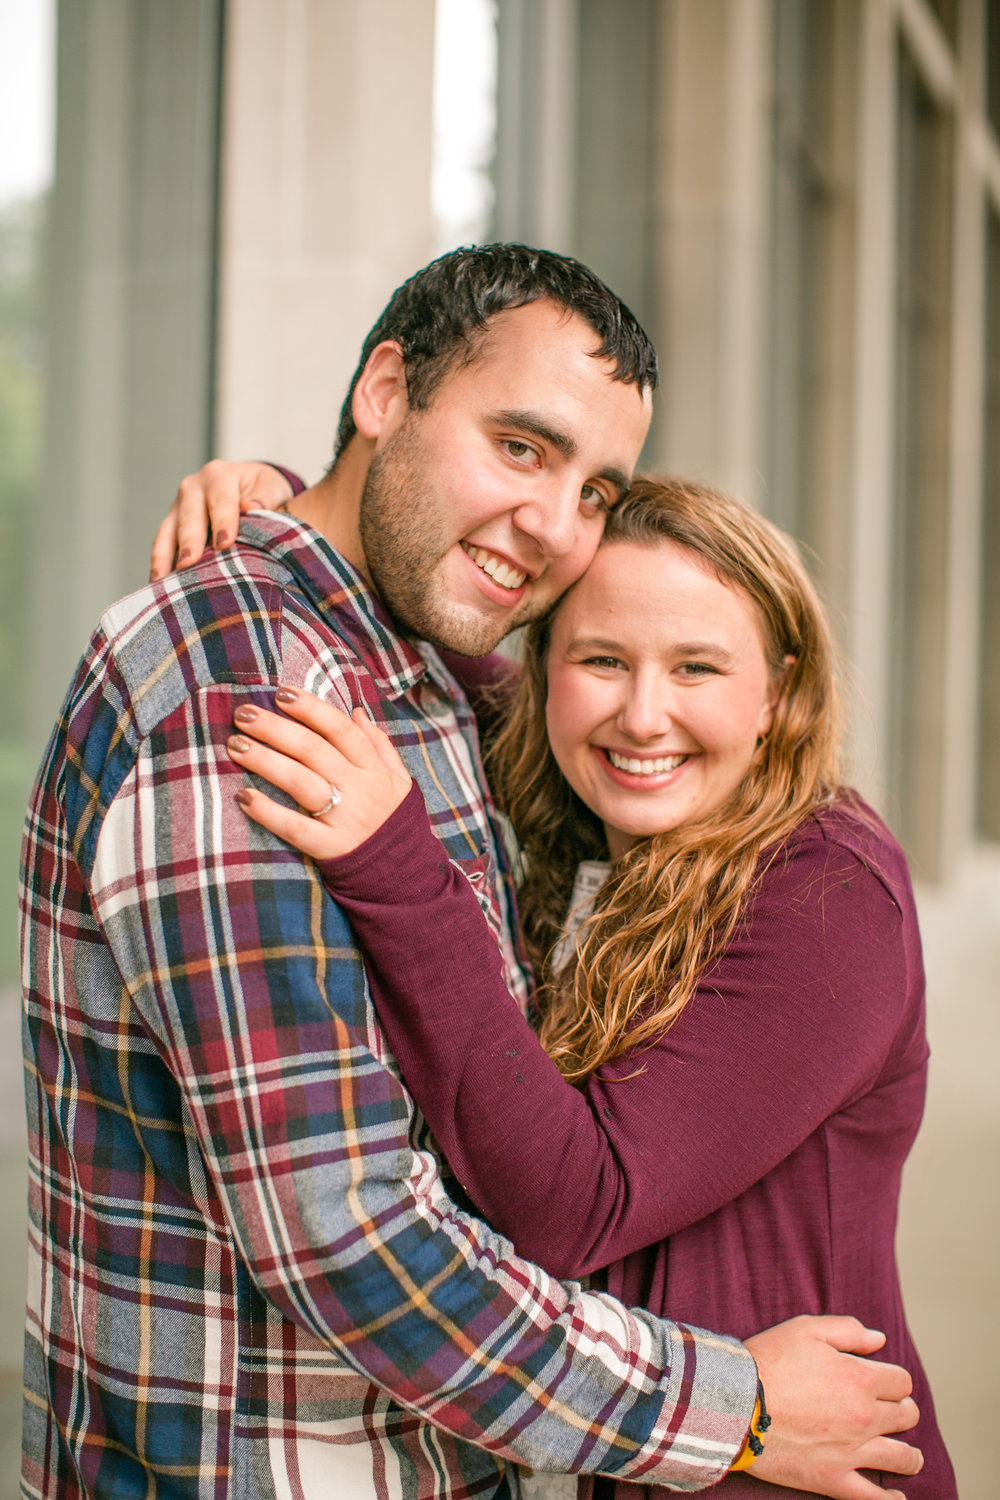 fall engagement photos what to wear maroon cardigan over white dress